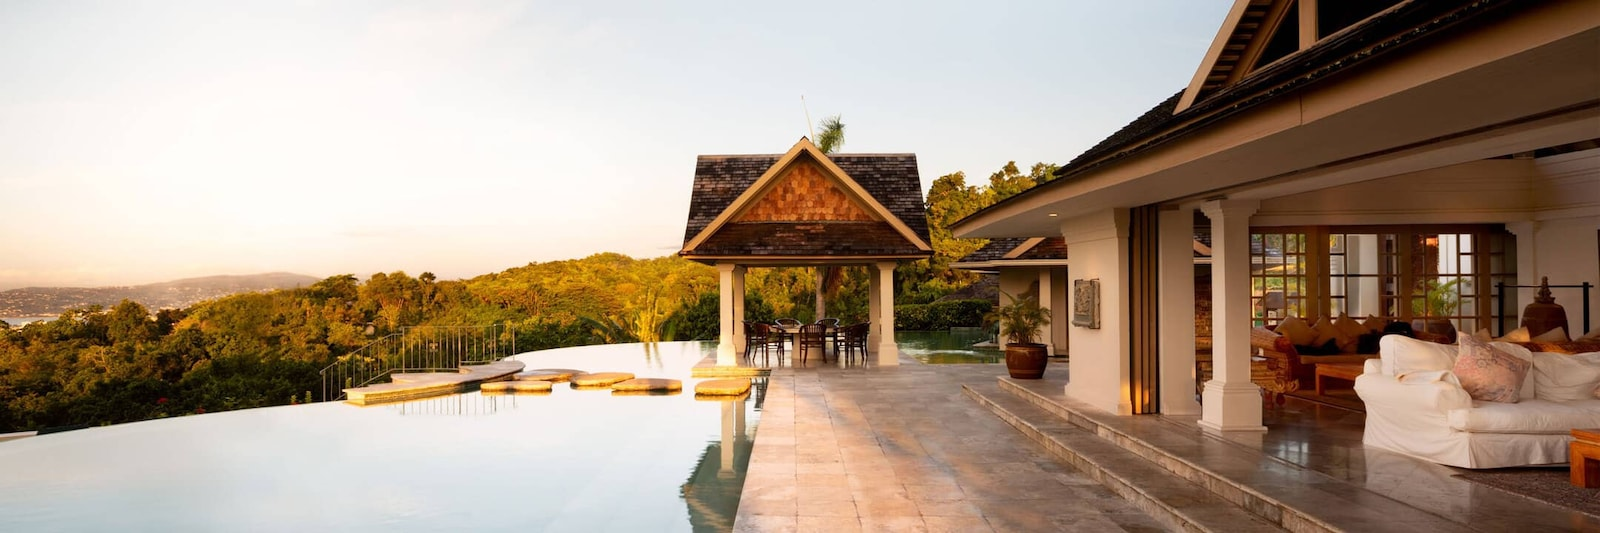 Luxury rentals in Jamaica